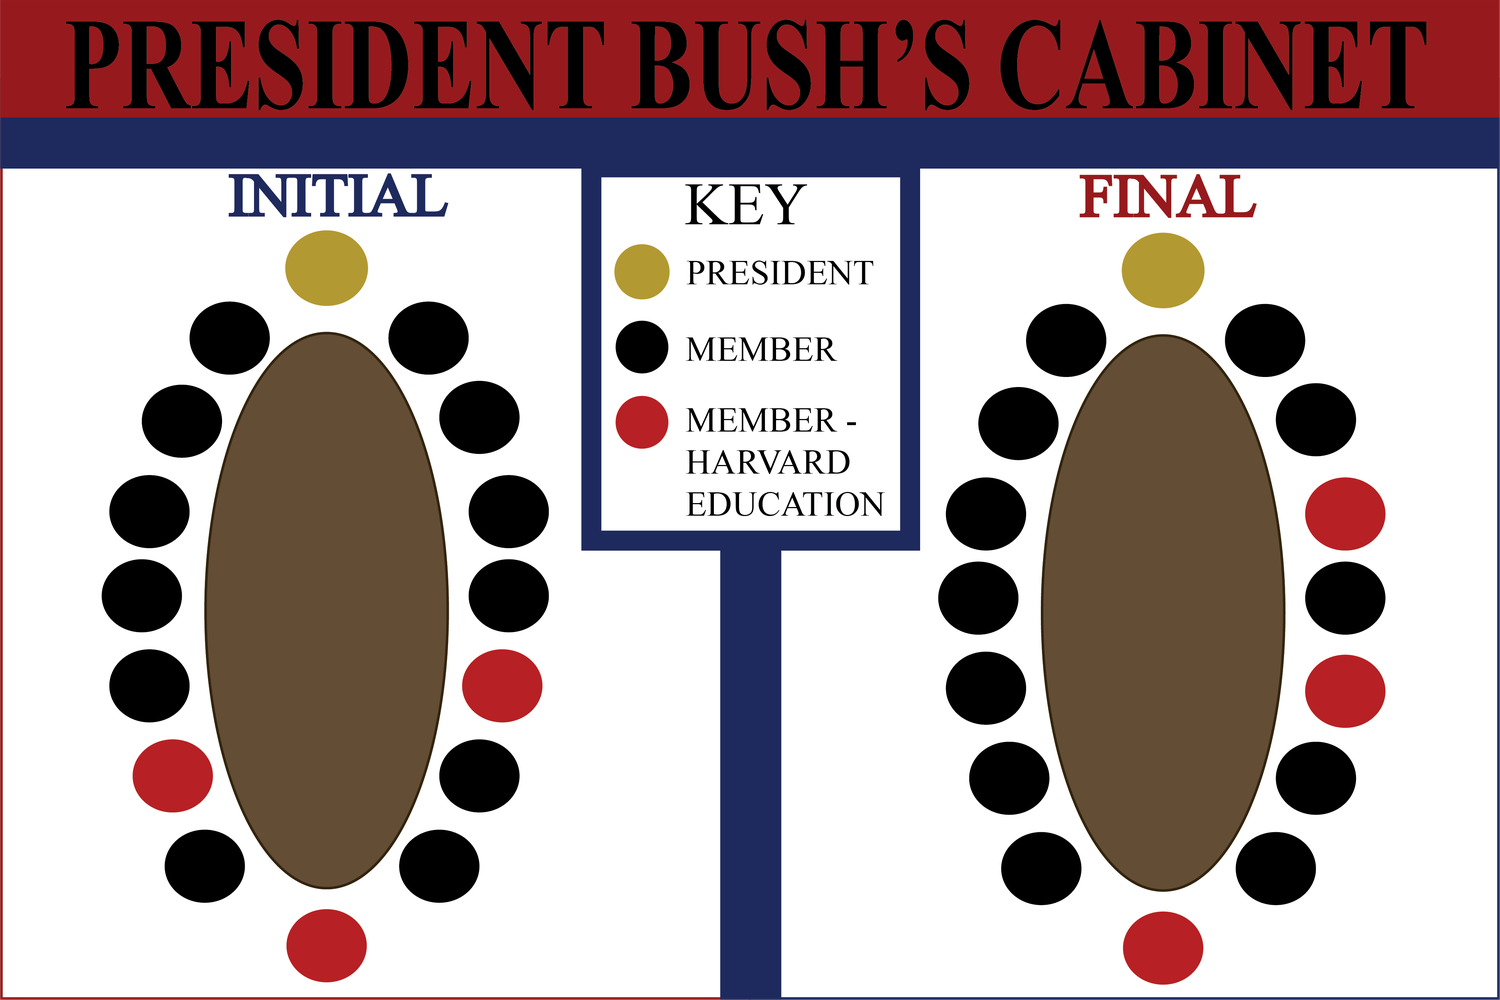 President George W. Bush started and ended his presidency with three Harvard-educated Cabinet secretaries.